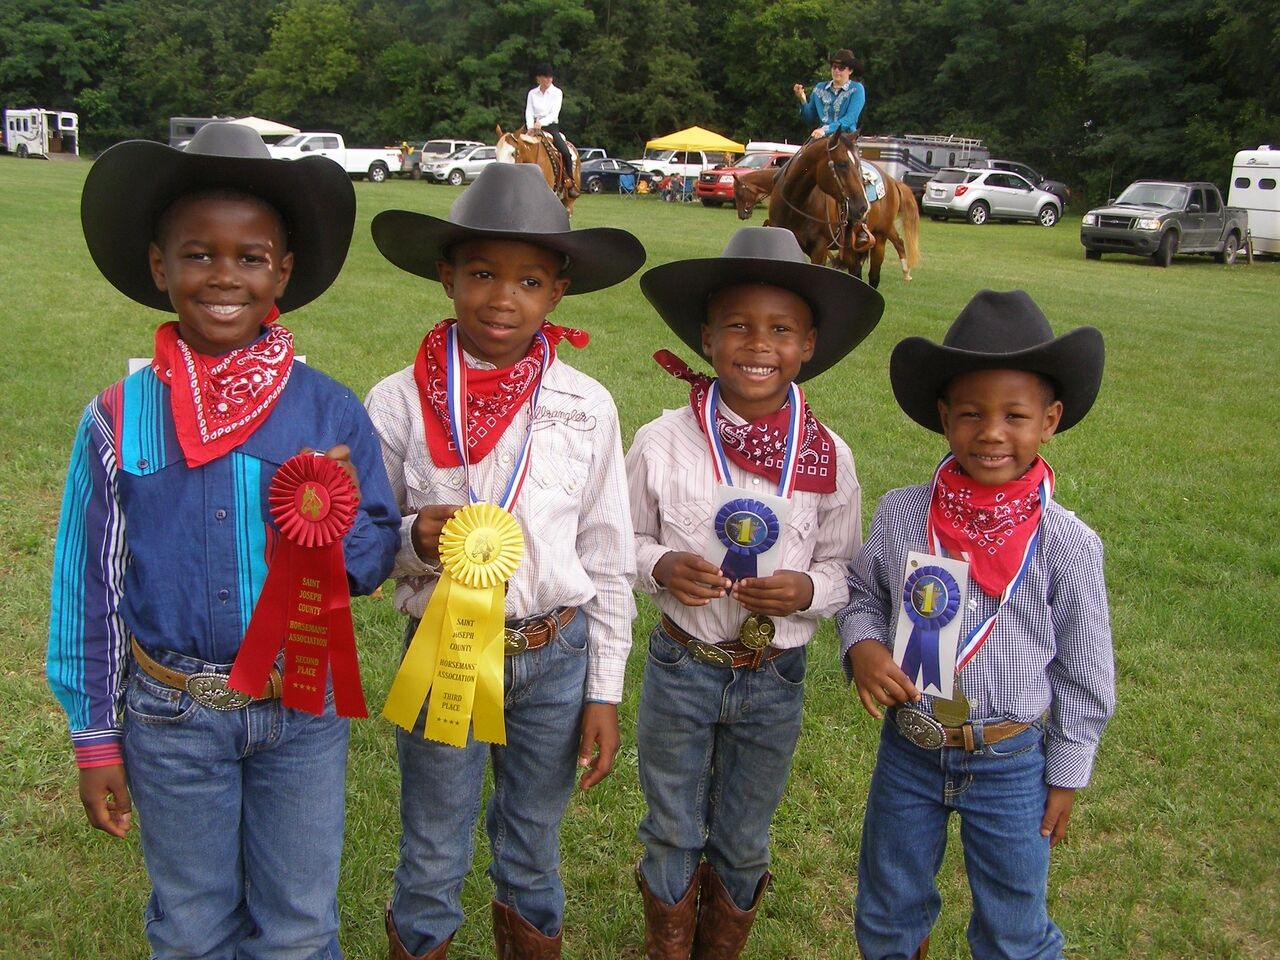 These four young  boys, who are mentored by OFFKM, won awards during recent 4-H horse competition in Cass County.